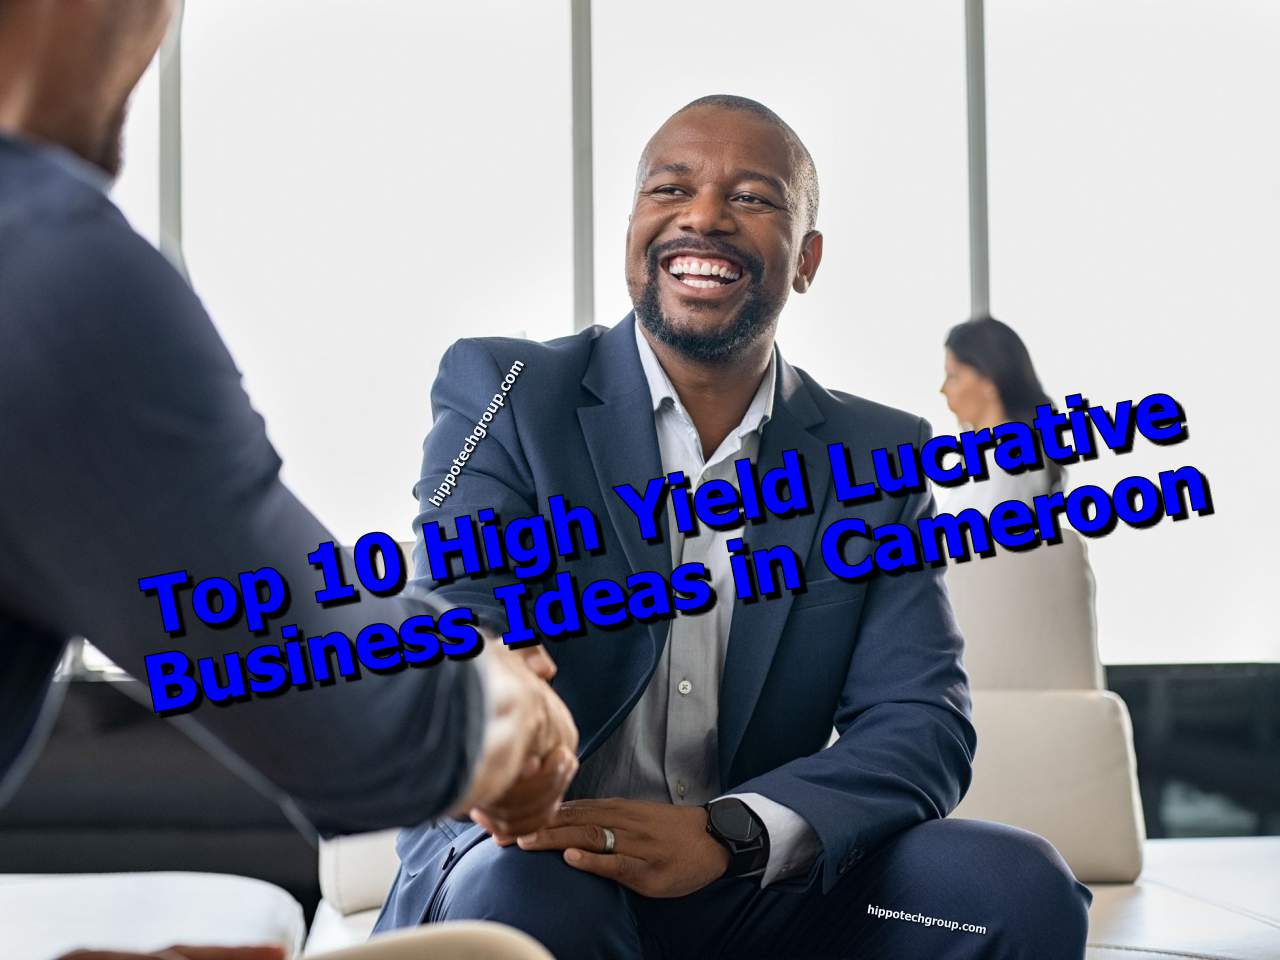 Top 10 High Yield (Lucrative) Small Business Ideas in Cameroon